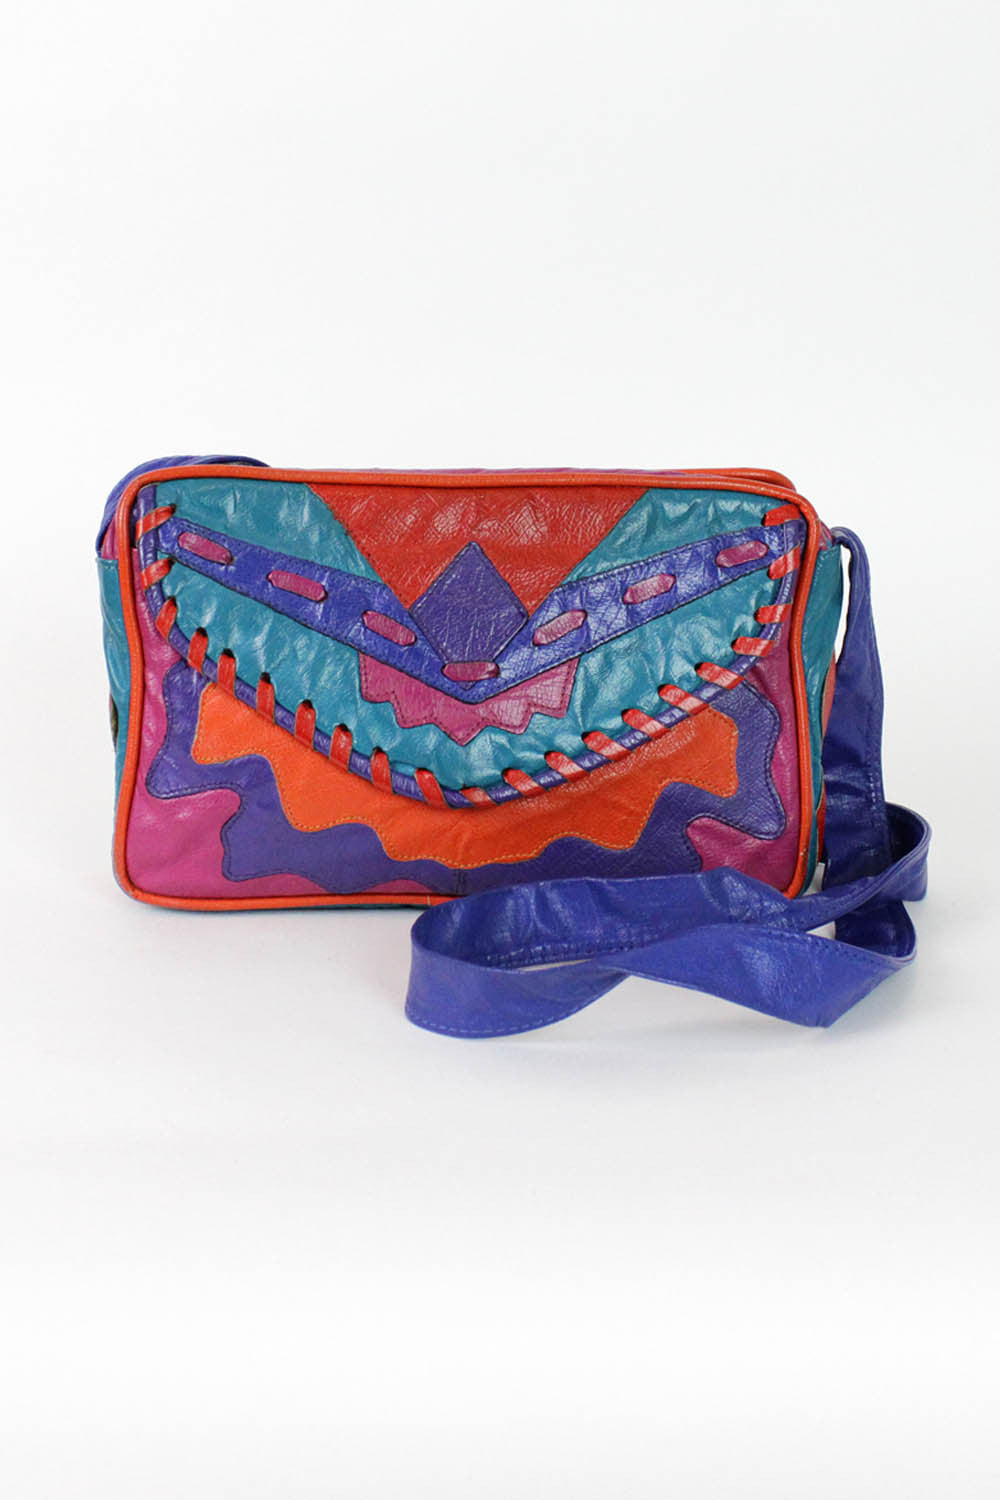 colorful leather bags